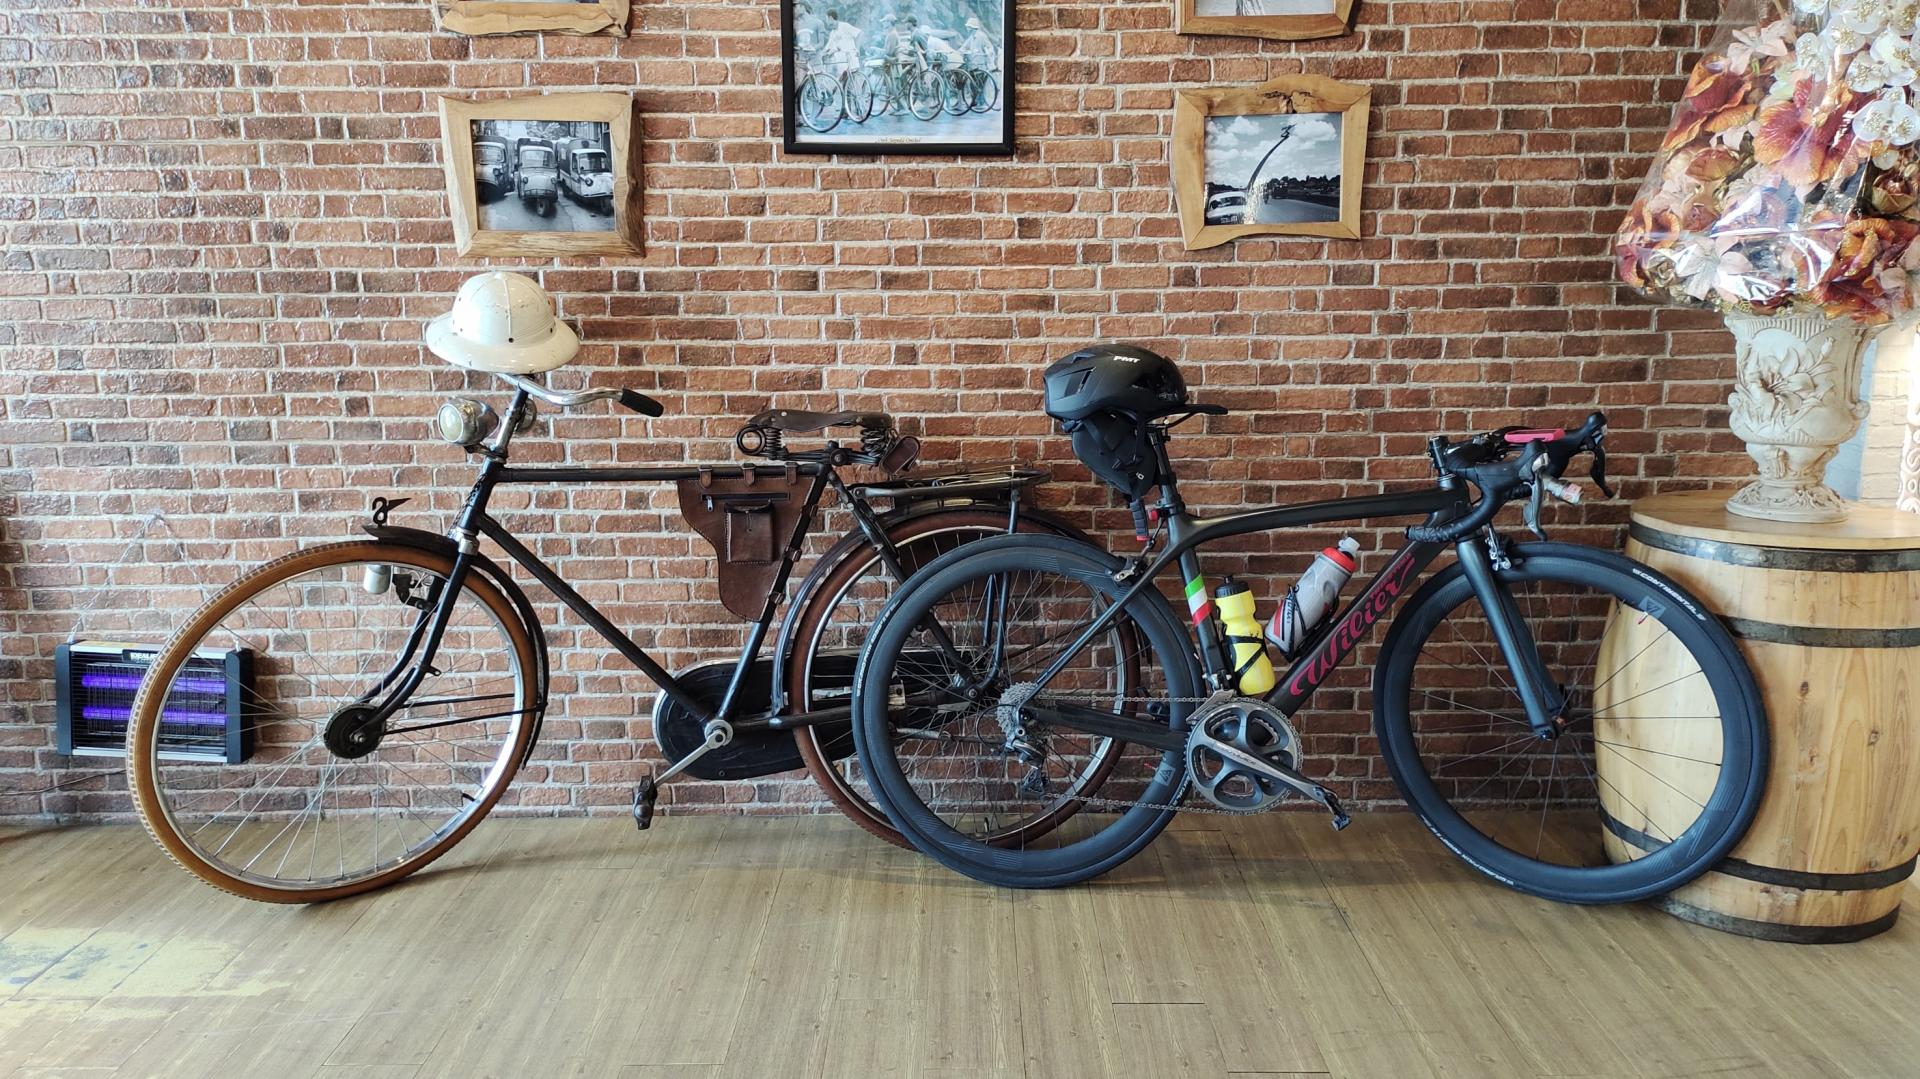 antique-vintage-bicycle-and-wilier-modern-road-bike